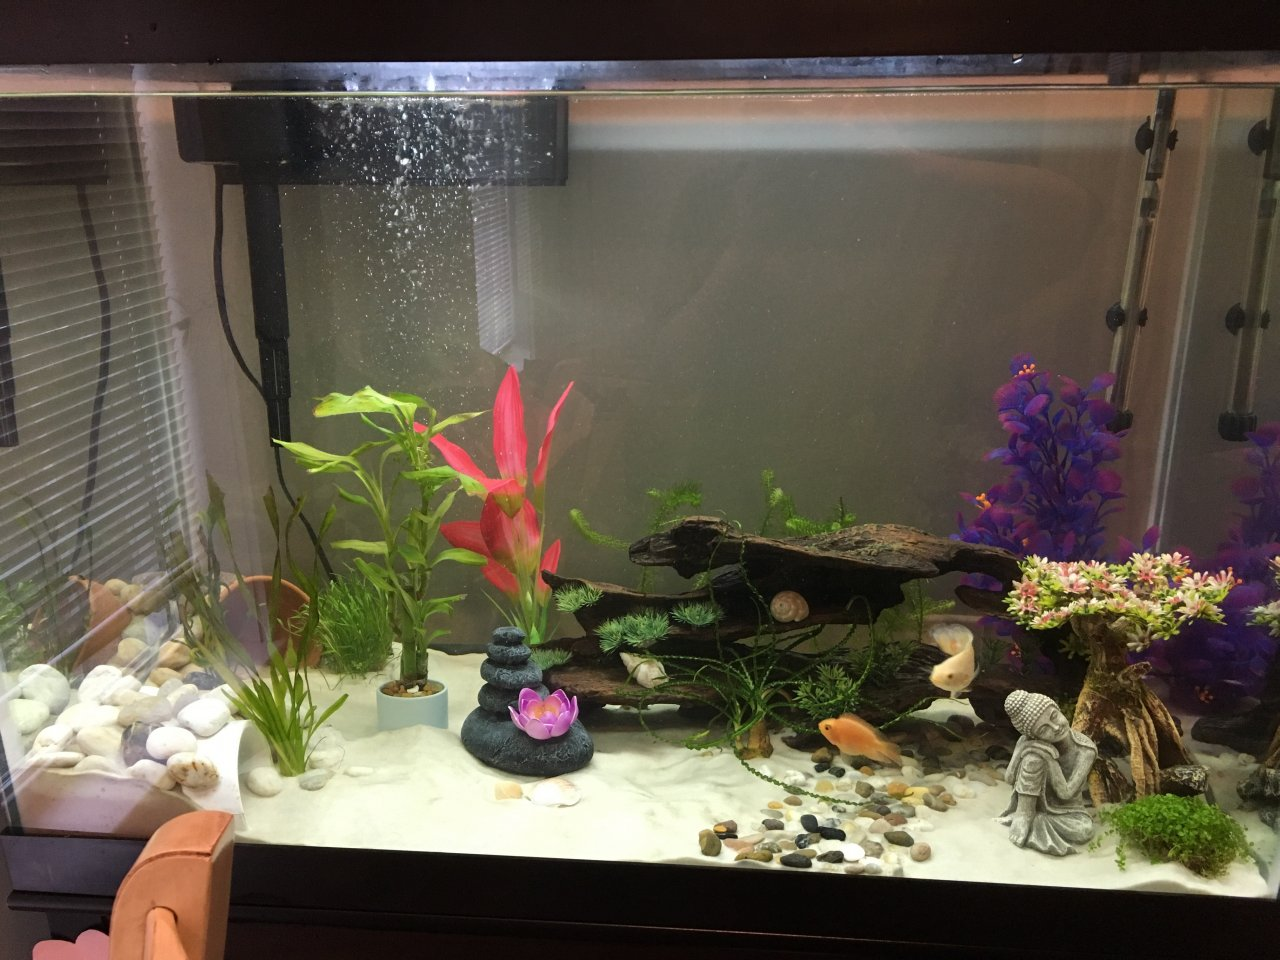 Fish in my aquarium are dying - I Have A Small 2 2 5in Parrot Fish In With My Albino Oscar Tiger Fish 2 My Aquarium Club